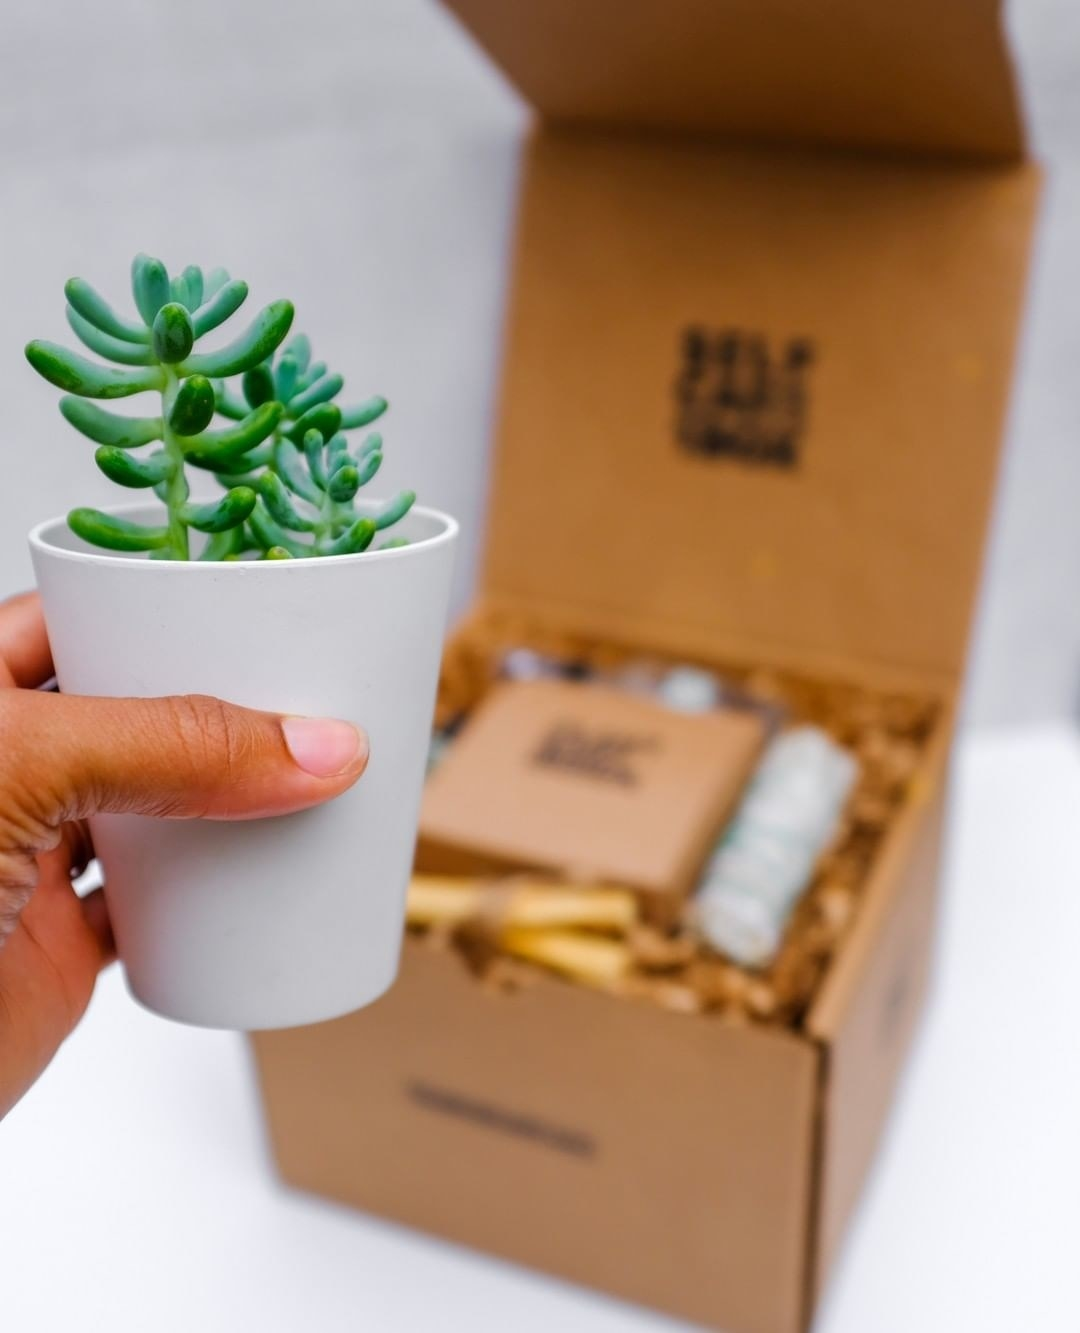 hand holding succulent in a grey vase in front of an open box